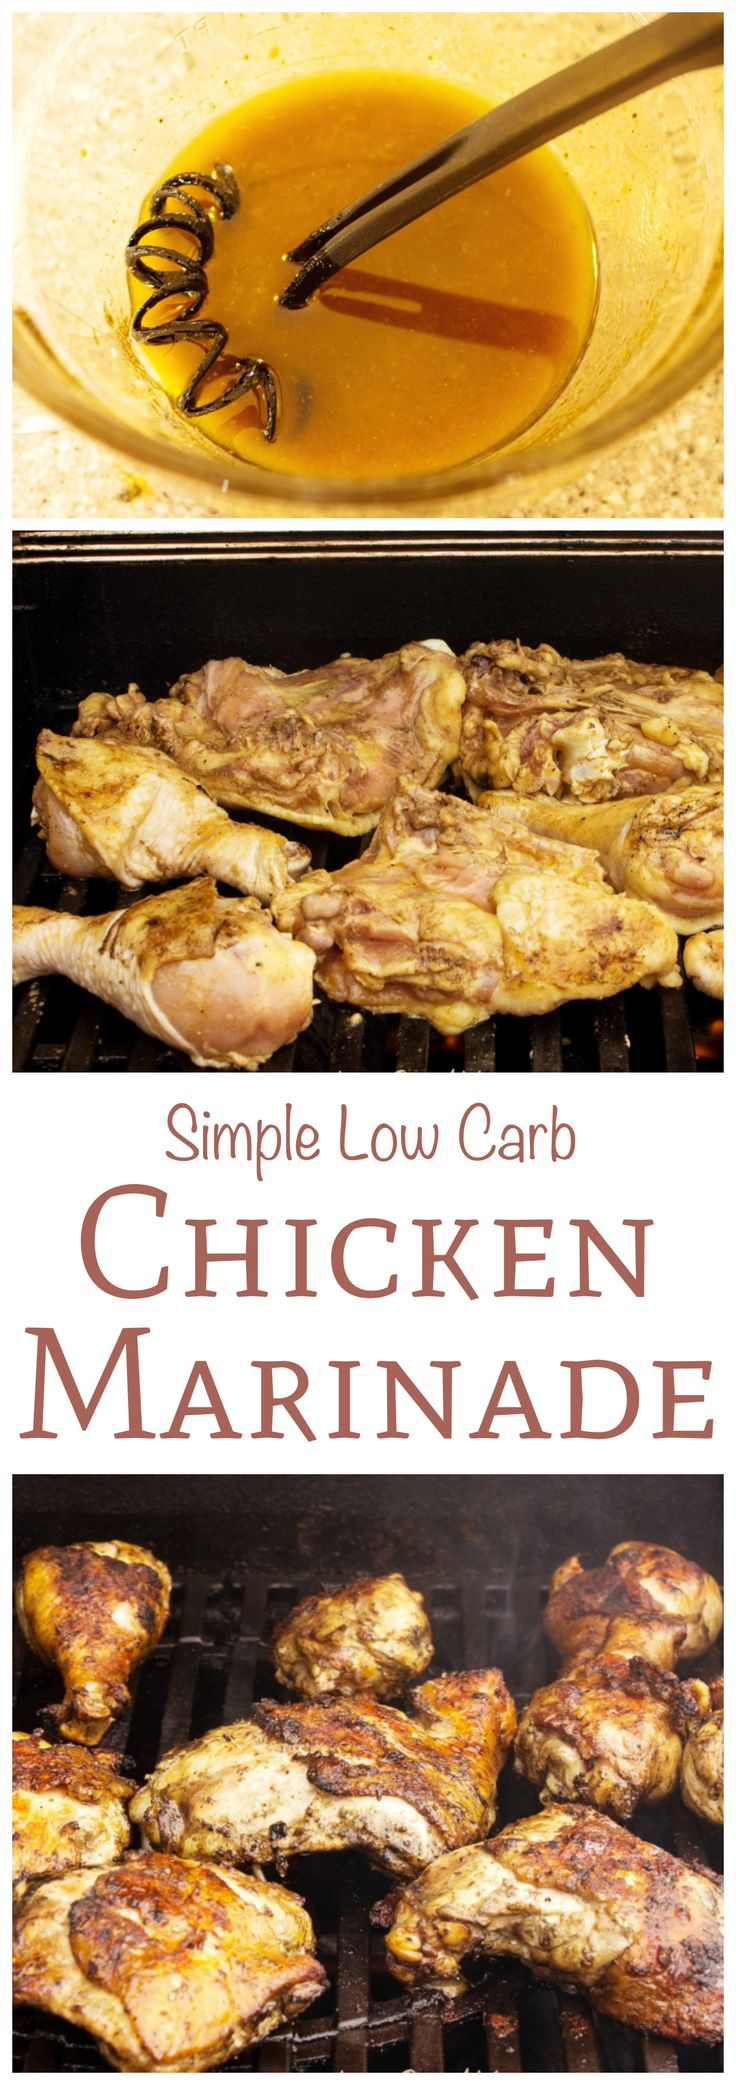 This low carb chicken marinade for grilling is quick and easy to make. Just whisk ingredients together then let chicken sit in marinade for an hour or more.